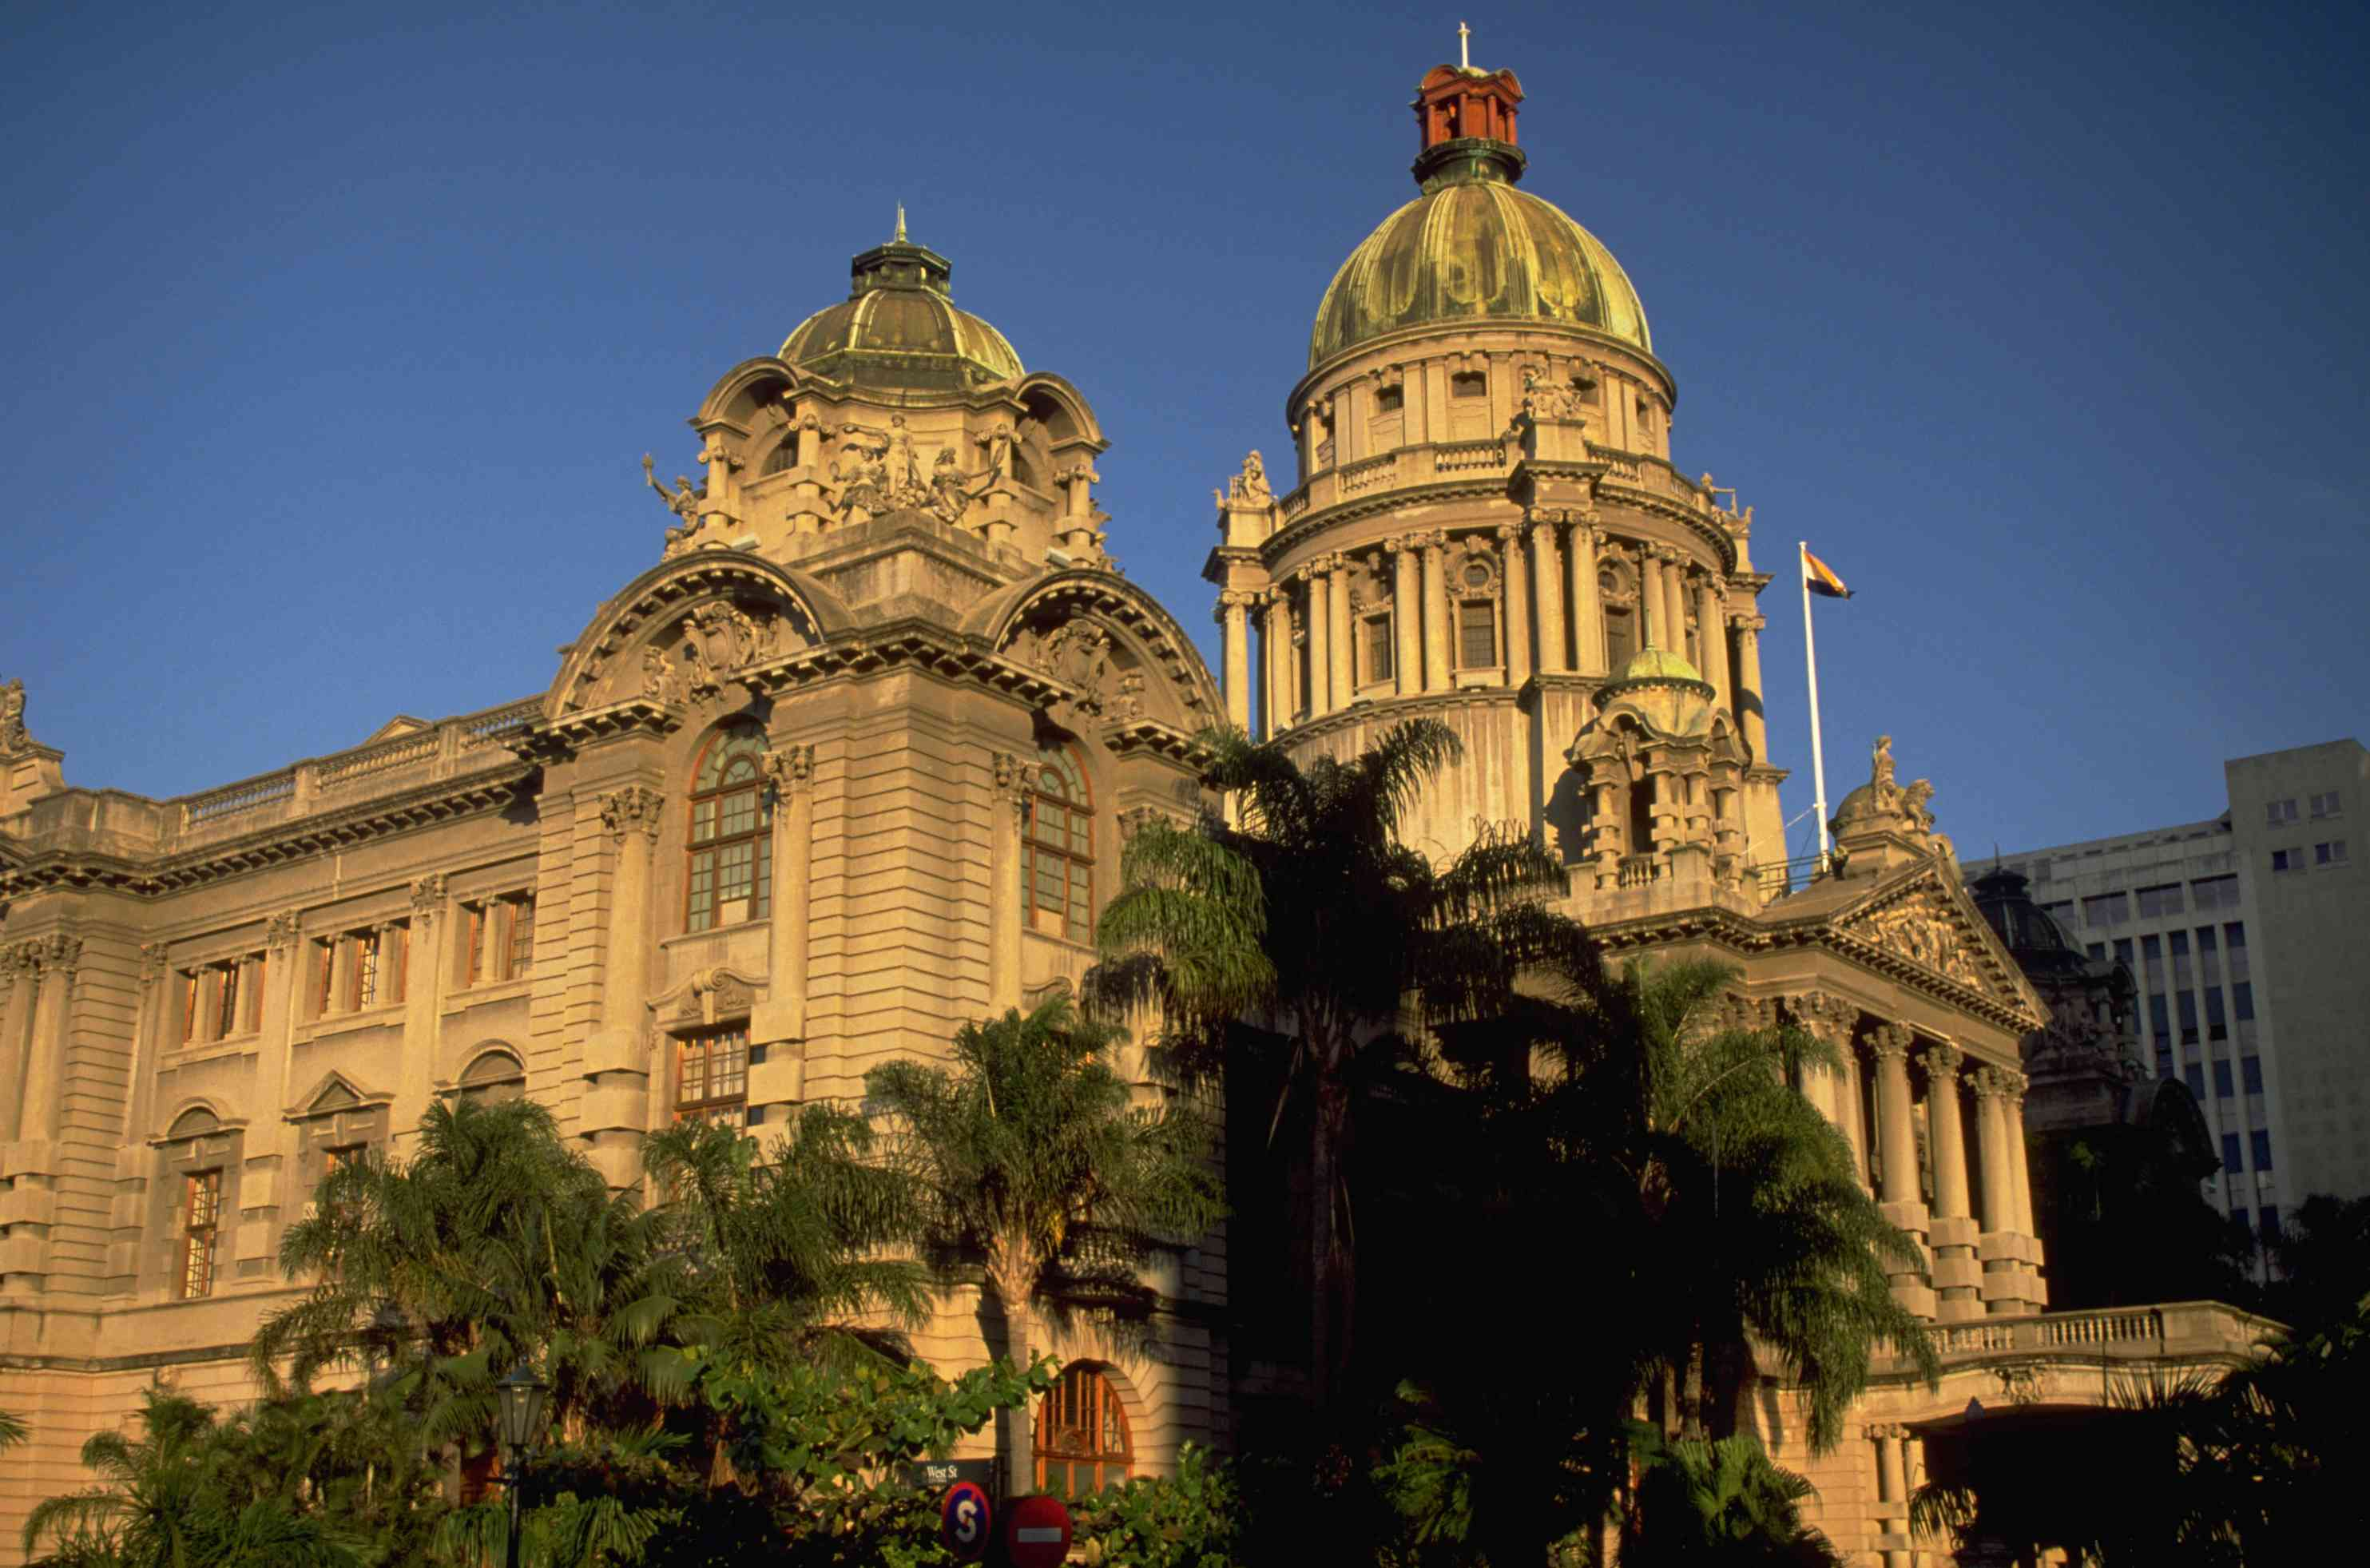 city hall in Durban, South Africa with columns and tall dome, lit by setting sun